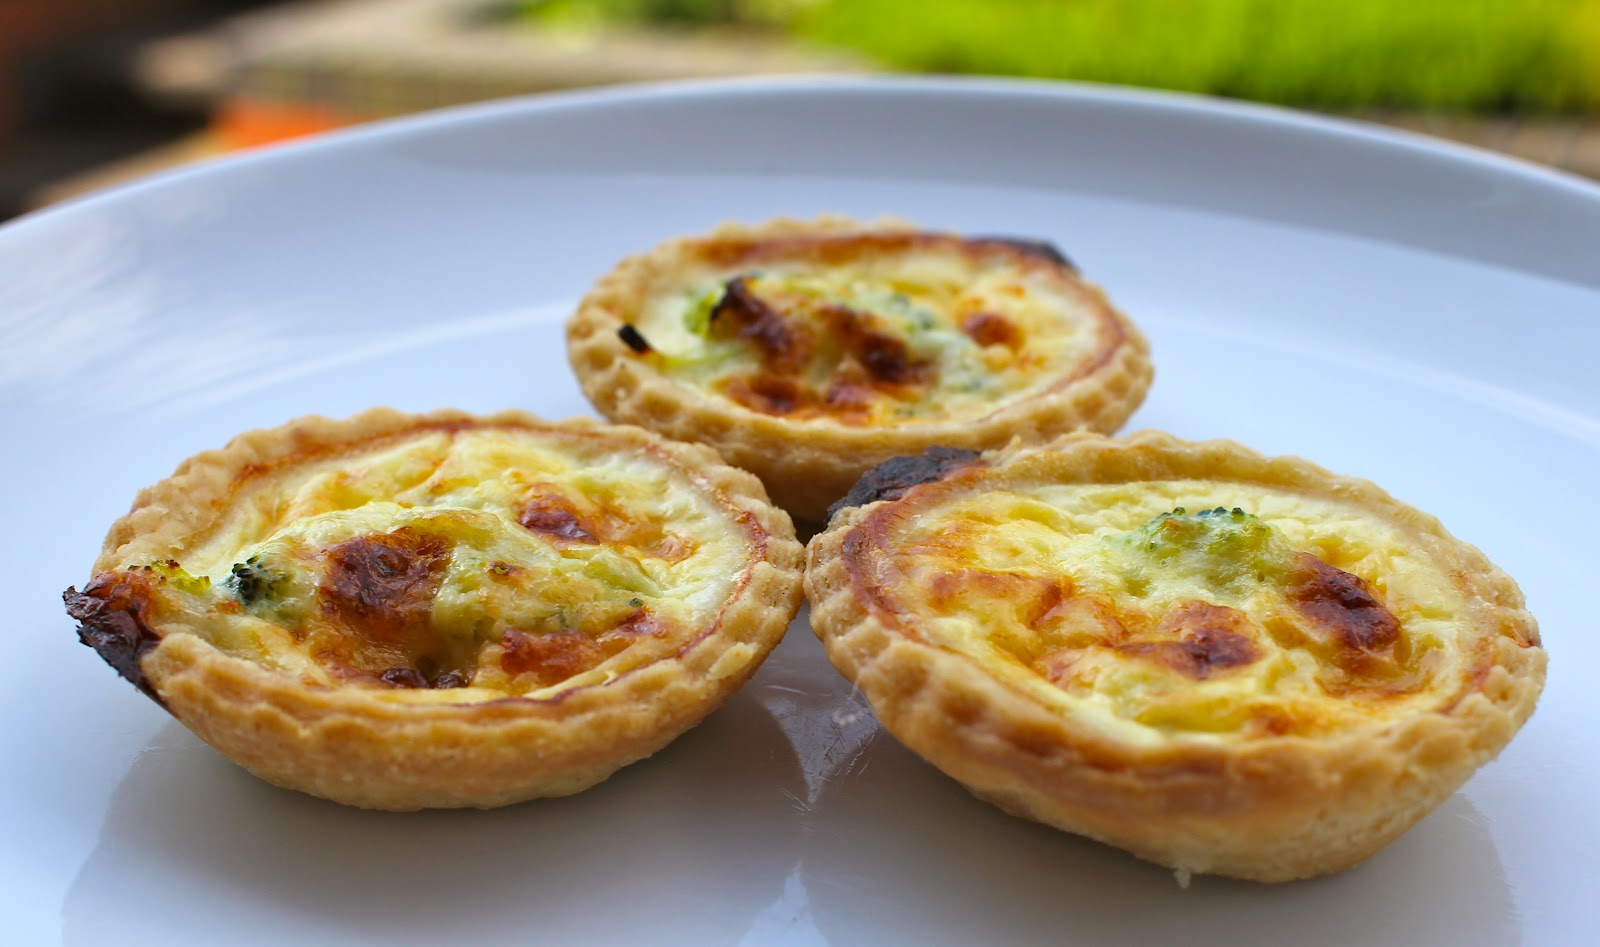 mamacook: Broccoli and Cheddar Mini Quiches for the Whole Family